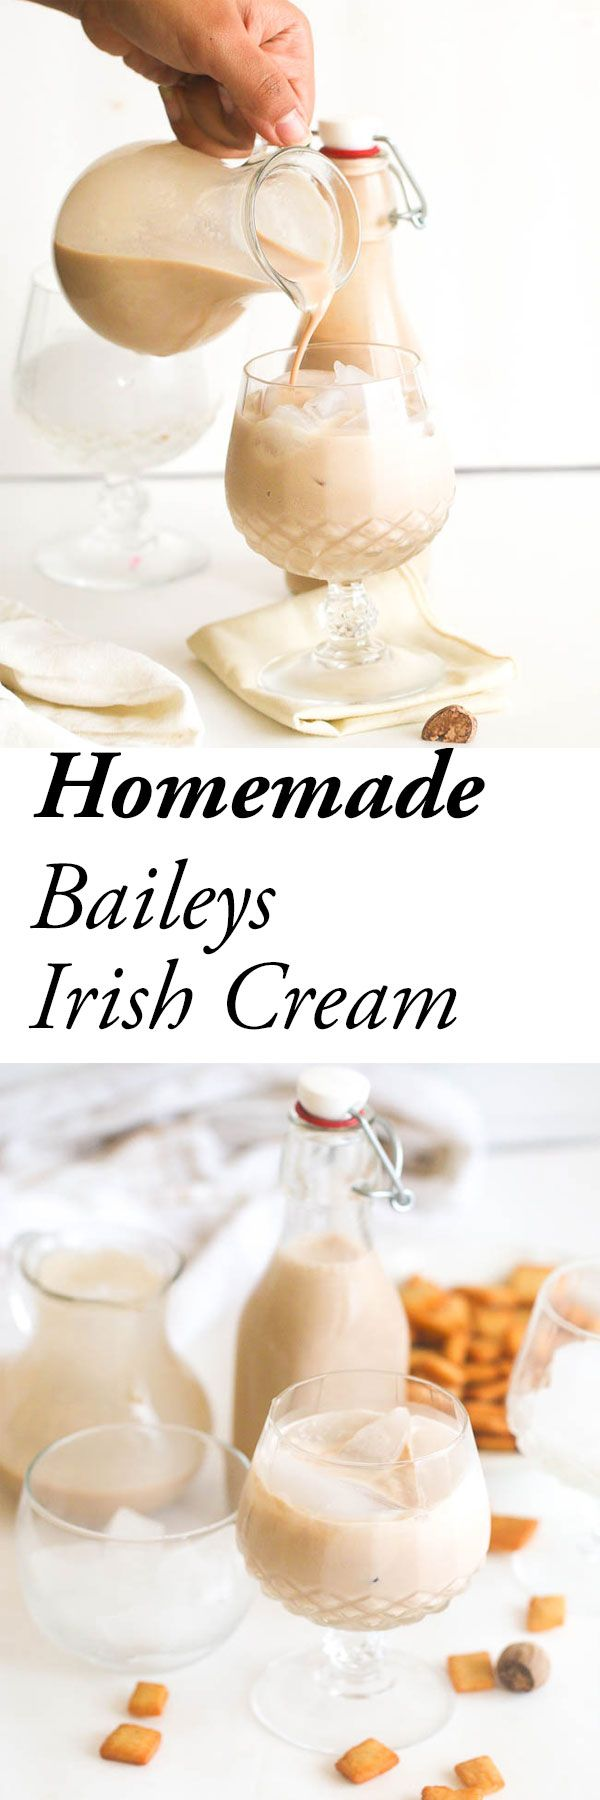 Homemade Bailey's Irish Cream Liquor? Anyone? Copy cat version easily customizable to suit your tastebuds with mint or spices